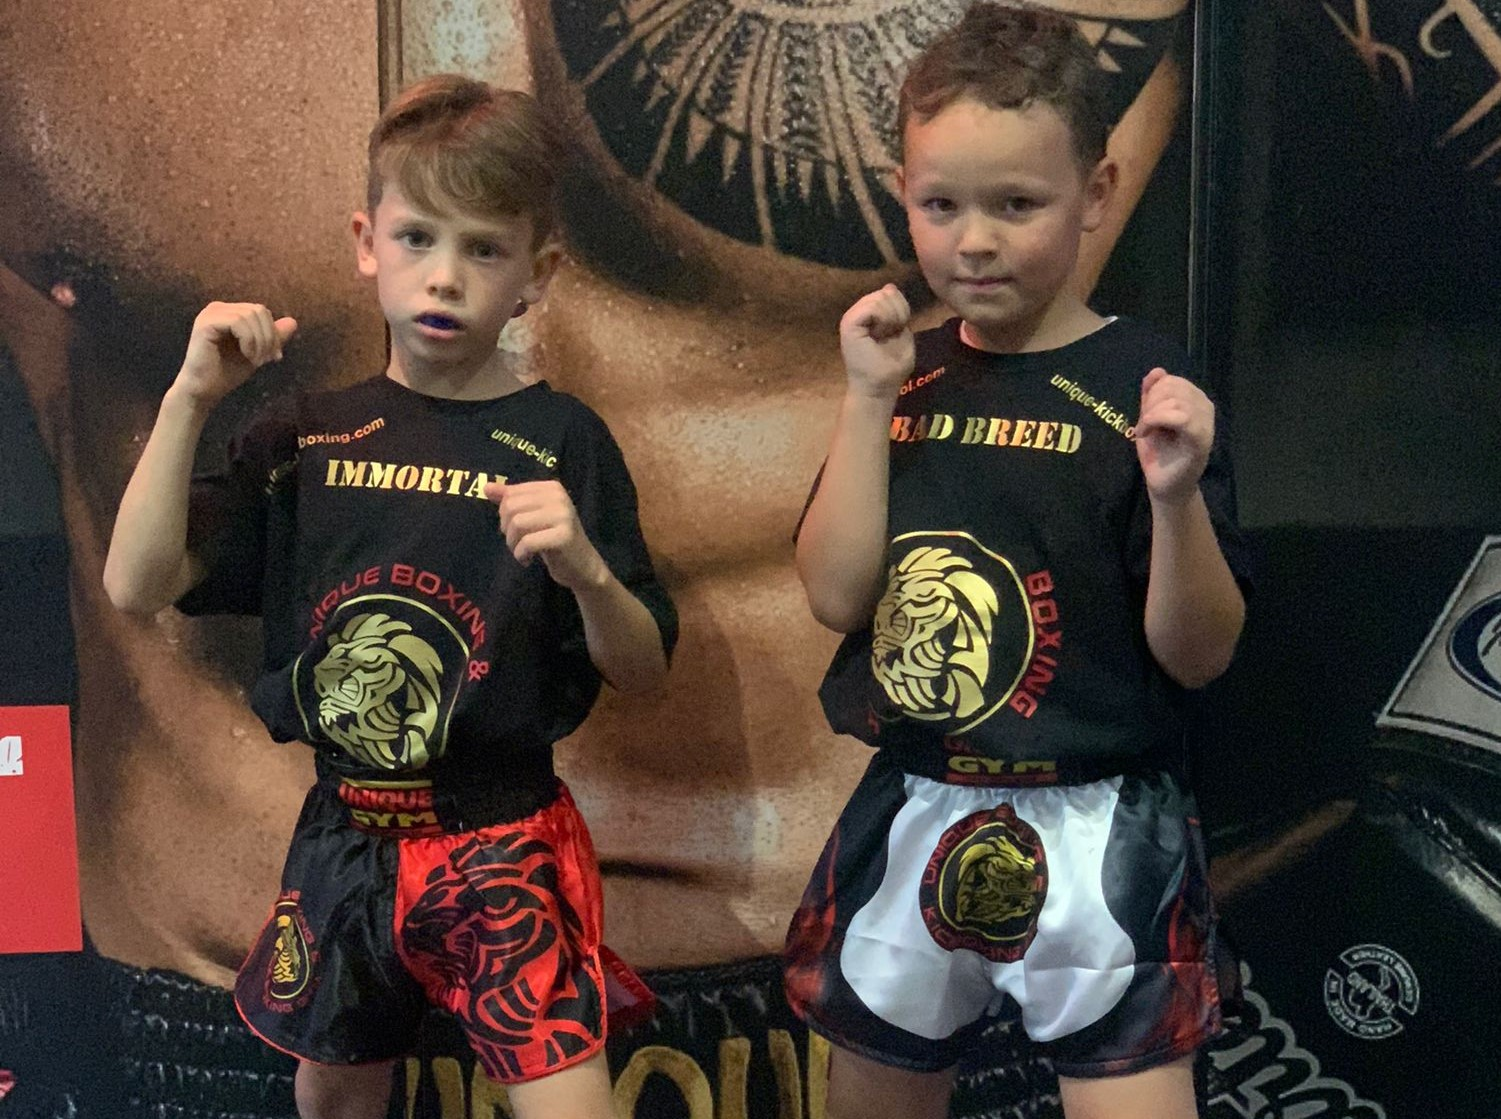 kids kickboxing and boxing stance